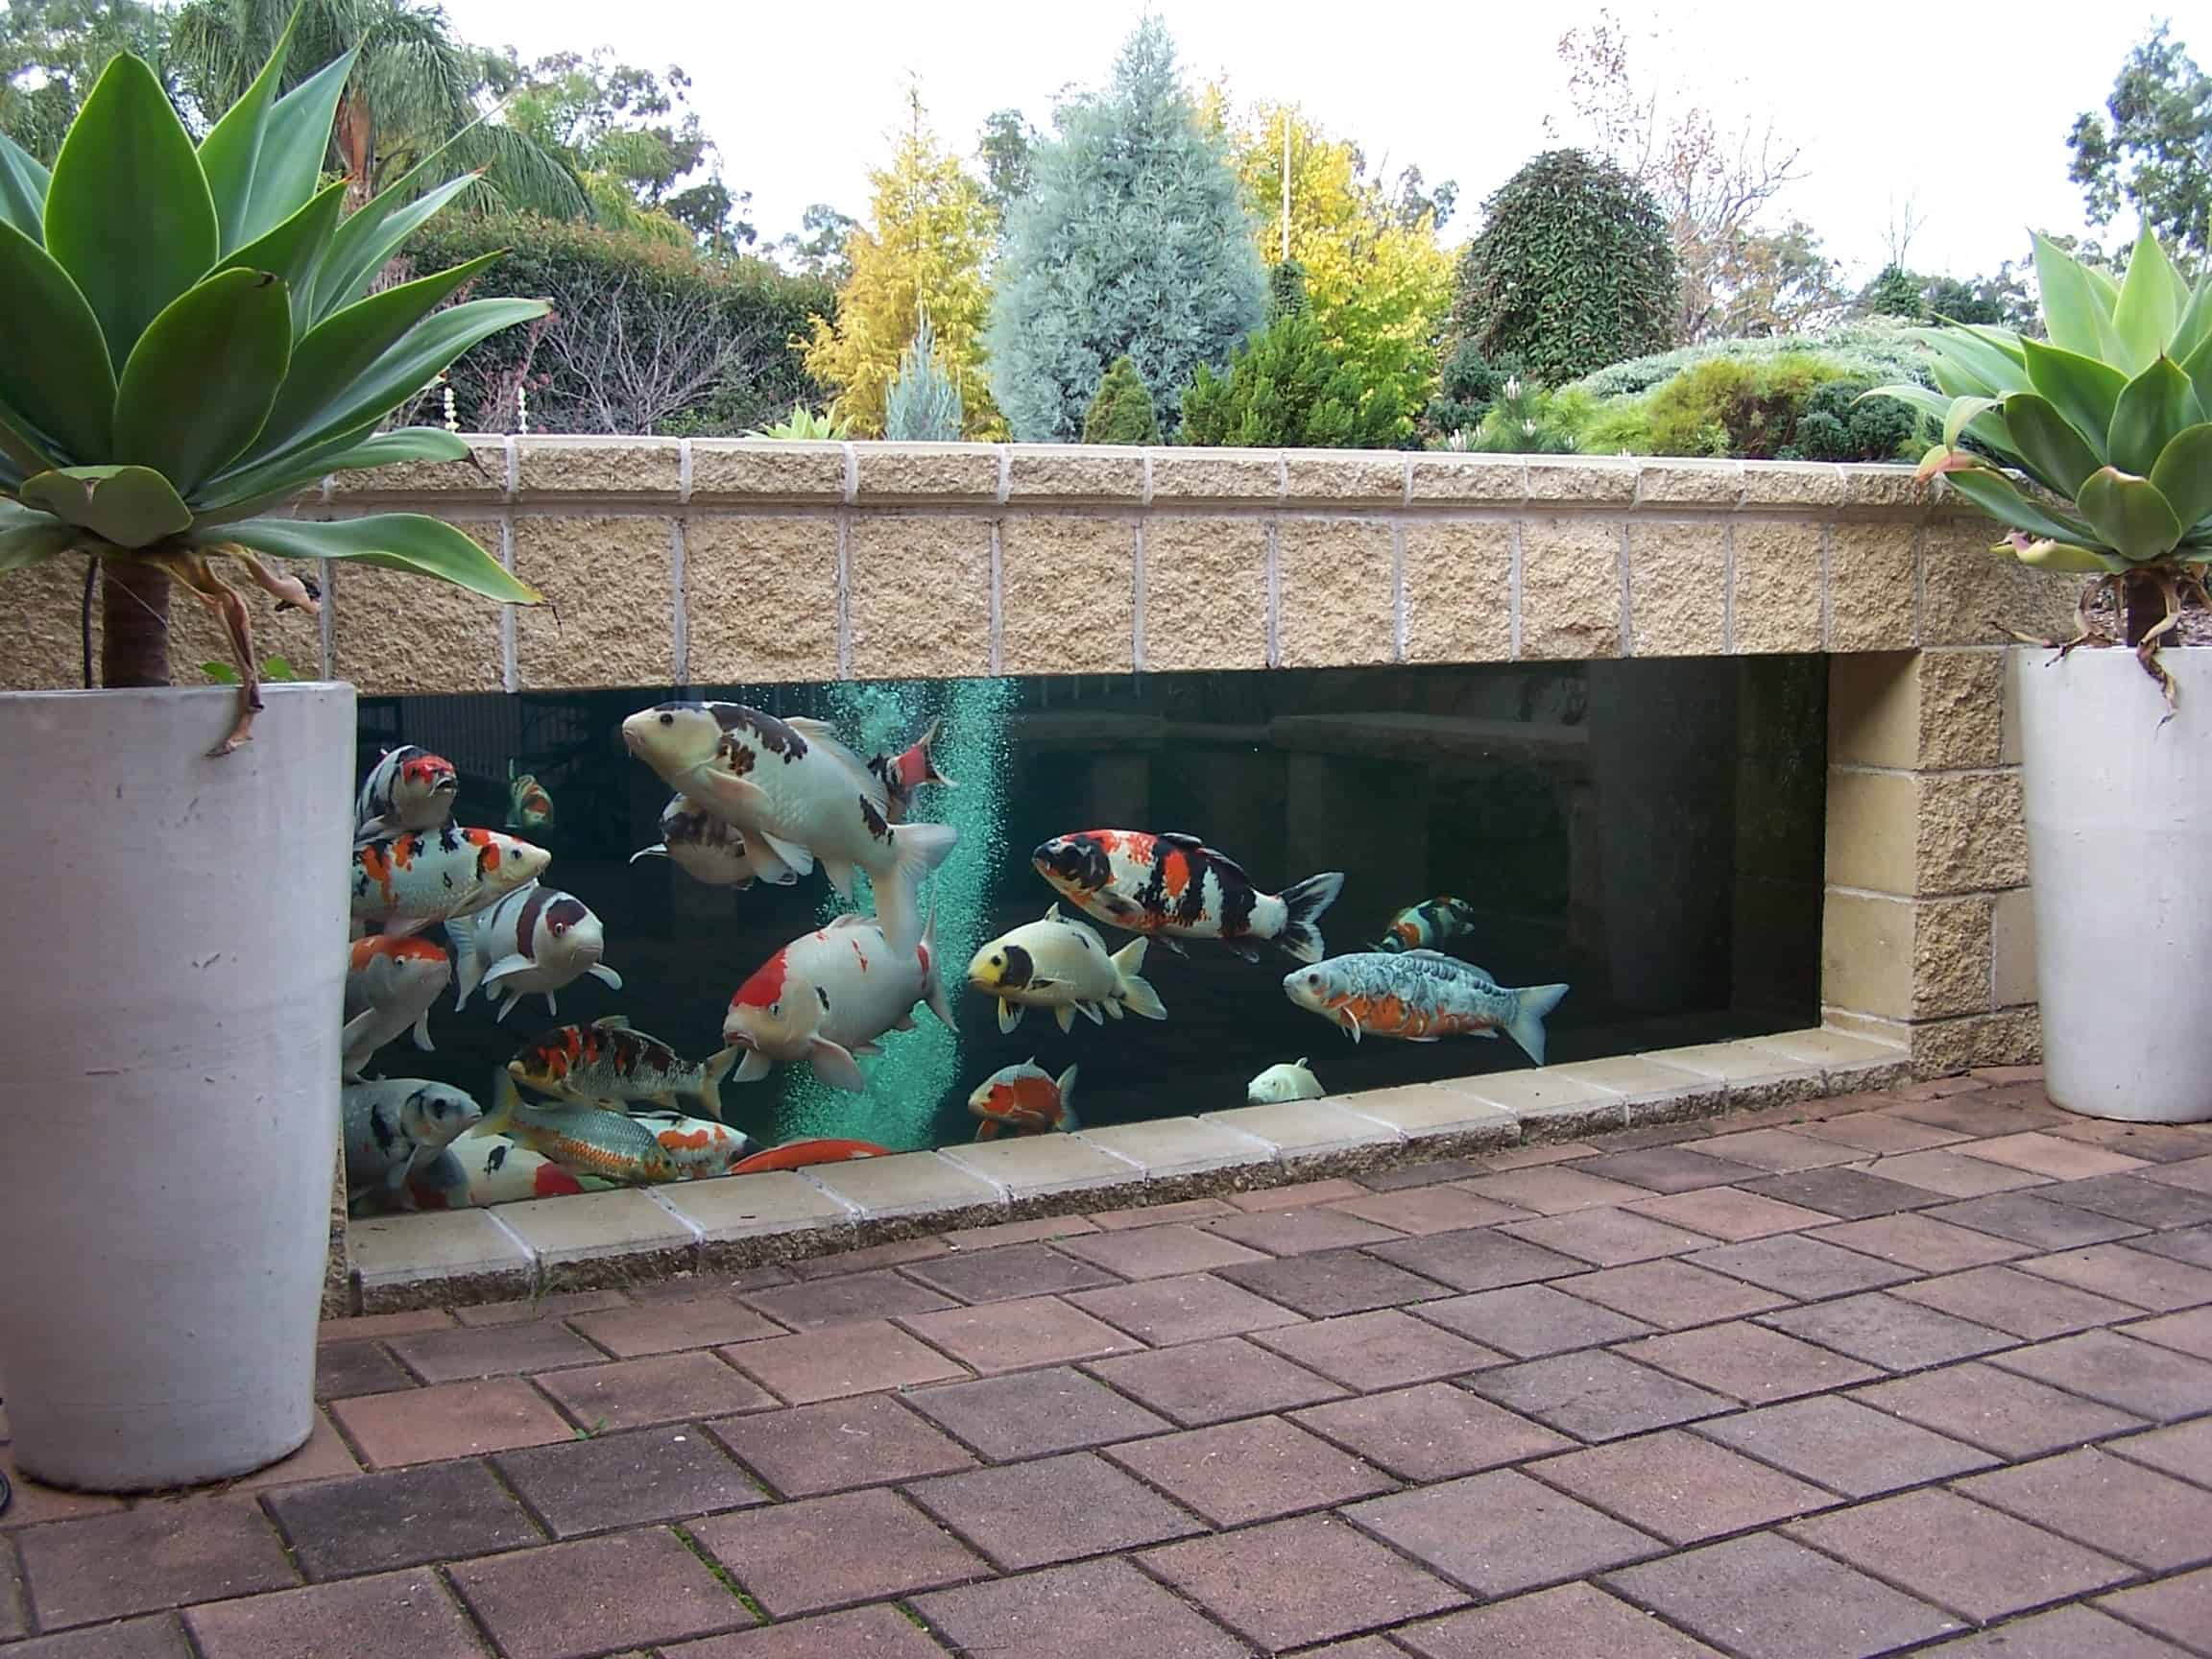 35 Sublime Koi Pond Designs and Water Garden Ideas for ... on above ground garden ponds ideas, diy small water feature ideas, raised garden pool ideas, raised pond kit, raised flower bed with pond, raised pond preformed, raised bed garden with pond, brick wall outdoor fountain ideas, raised turtle pond, raised koi pond, raised garden pond plans, raised garden for small ponds,